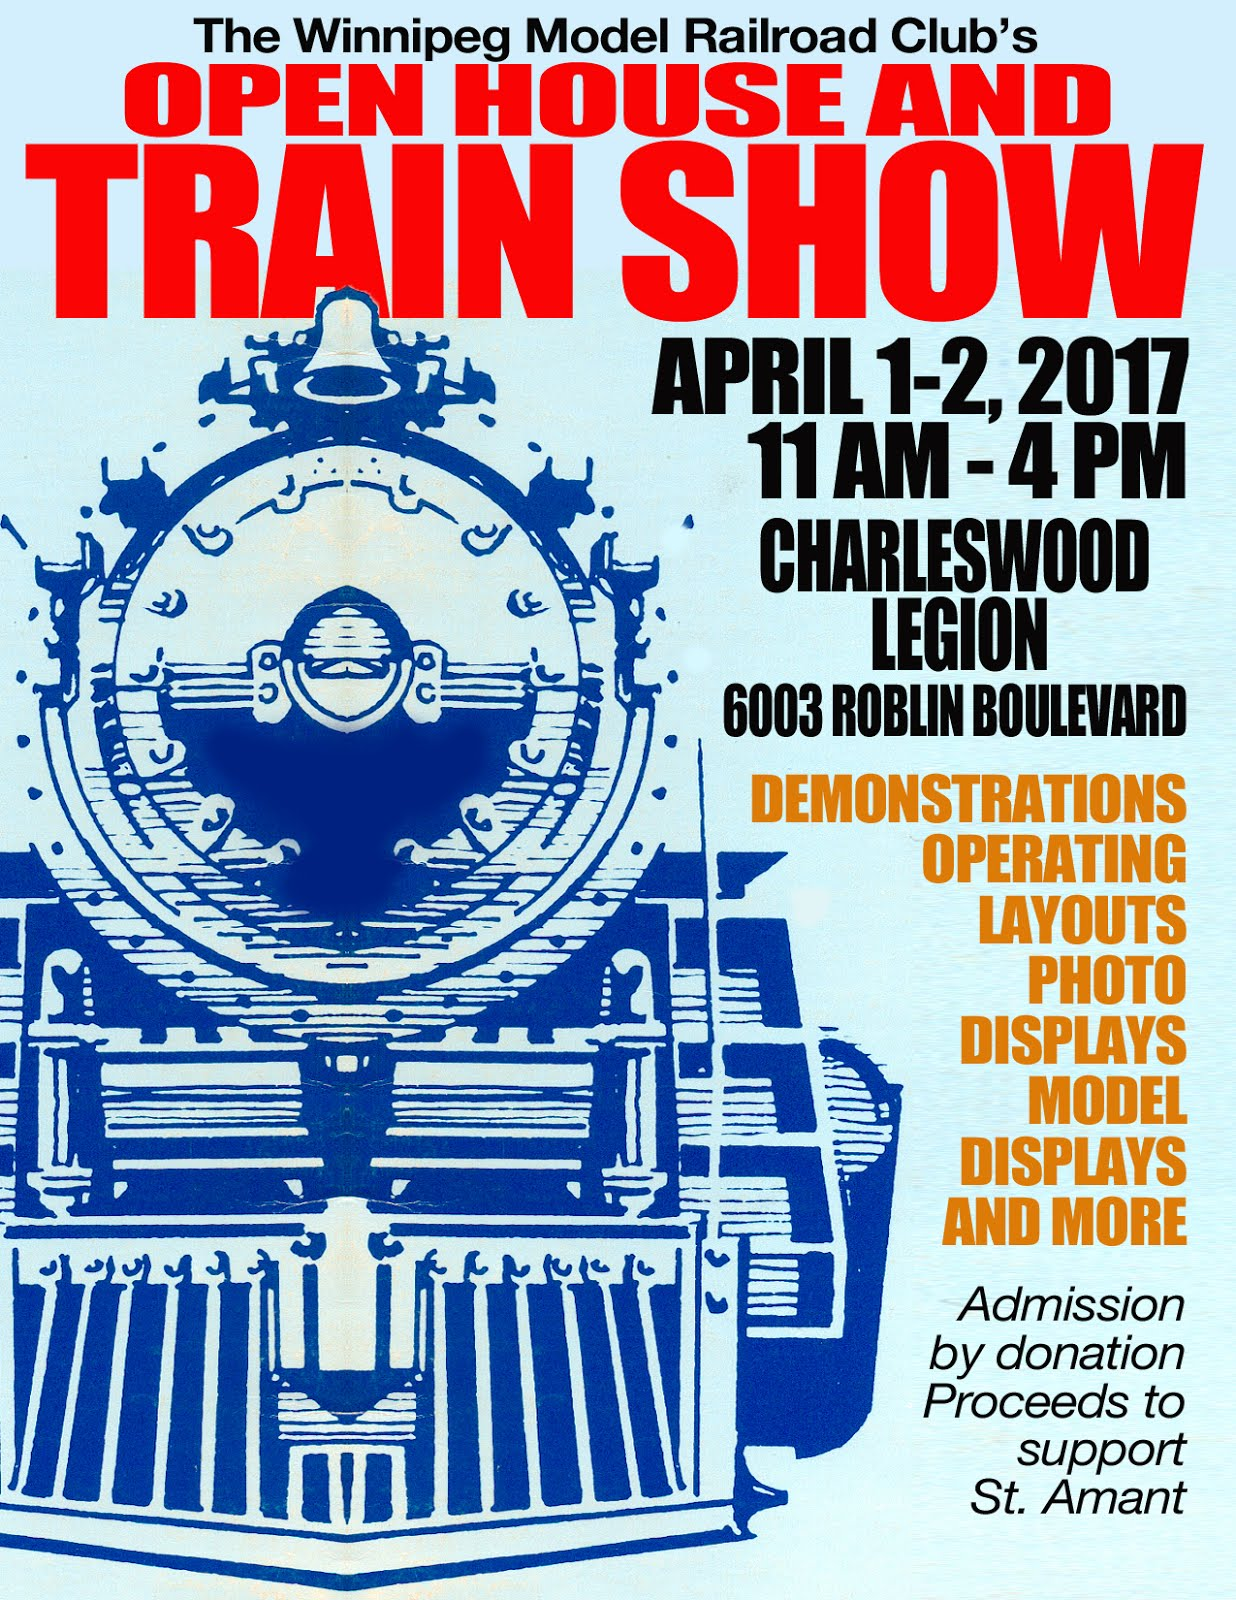 WMRC'S ANNUAL OPEN HOUSE AND TRAIN SHOW